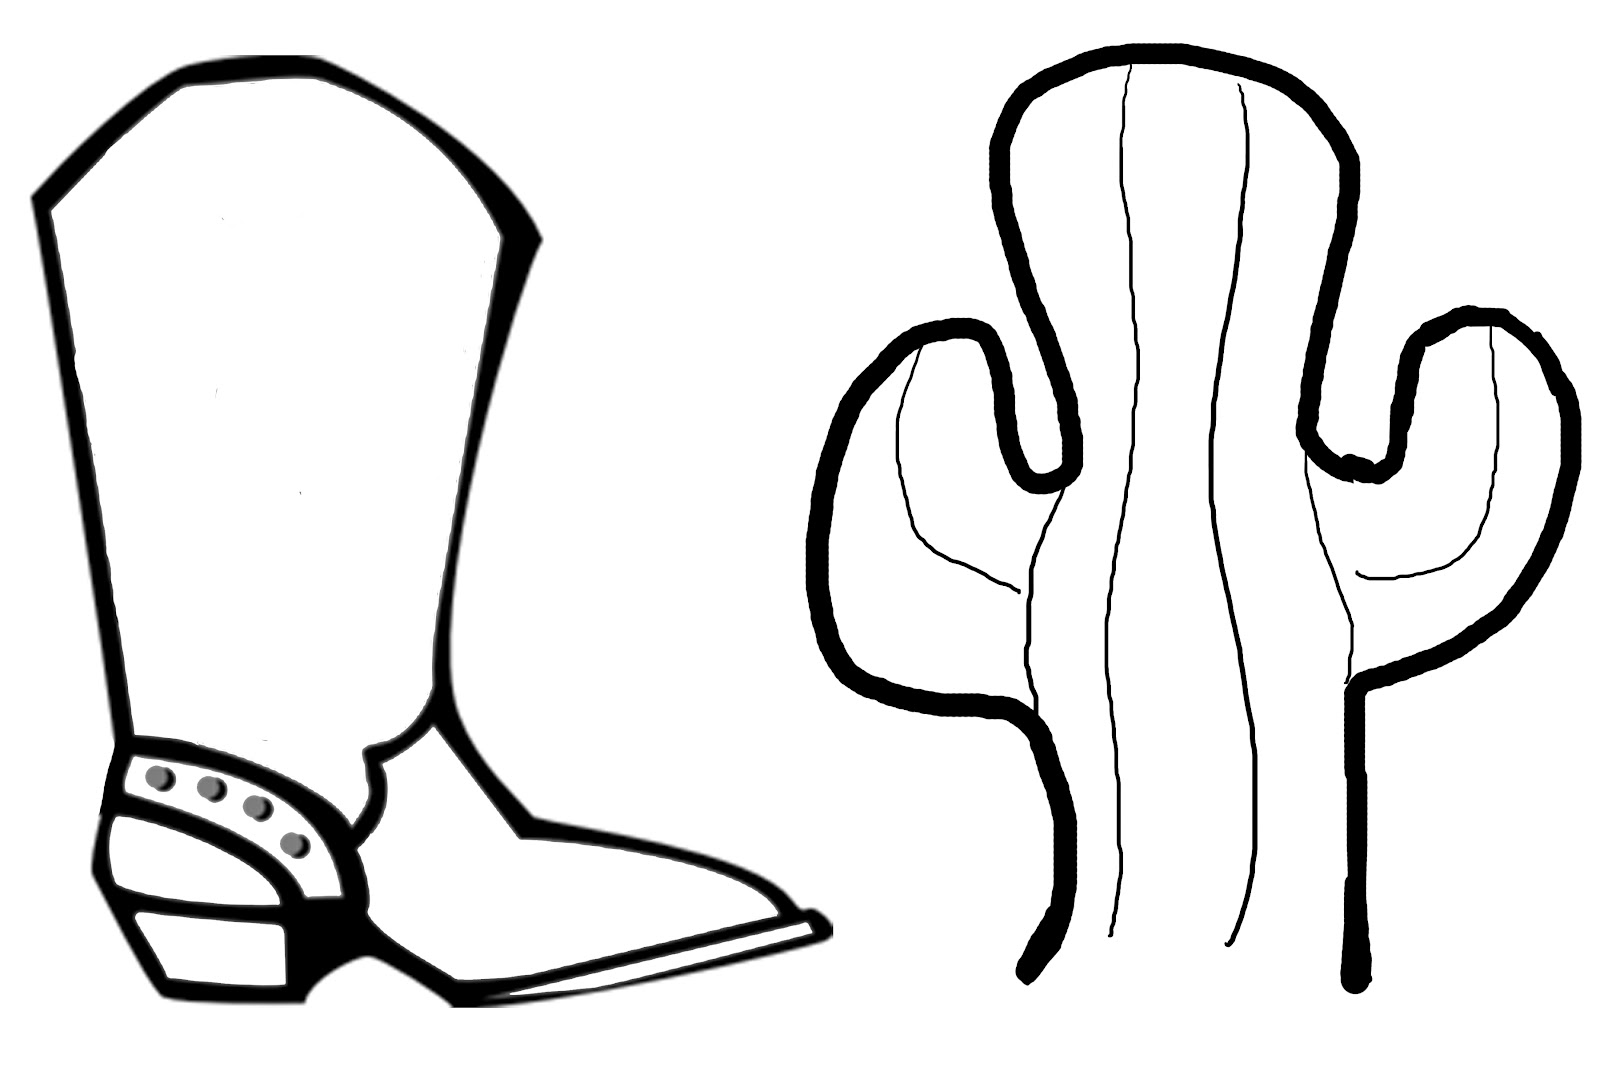 printable cowboy boots coloring pages - photo#5